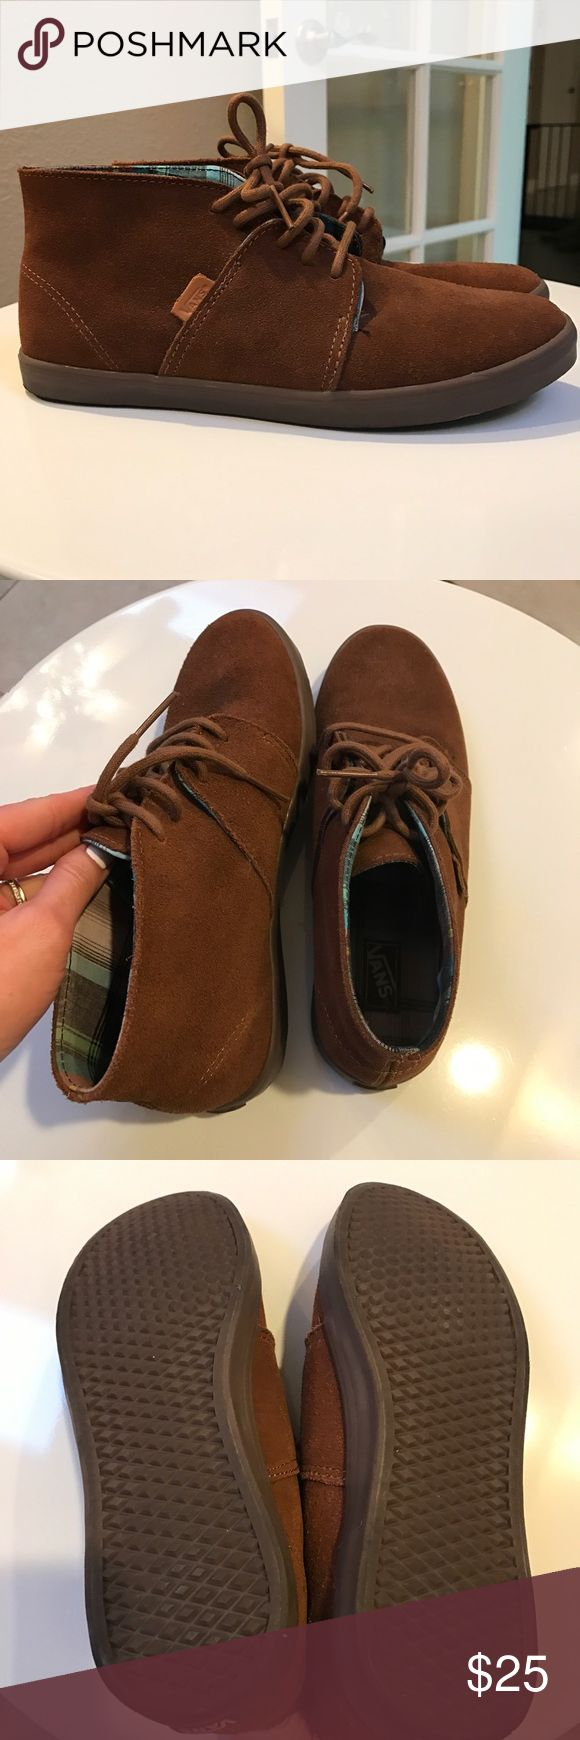 Vans Brown Suede Chukka Sneakers Vans Brown Suede Chukka Boot sneakers. Excellent condition. Like new. Only wore once. Vans Shoes Sneakers